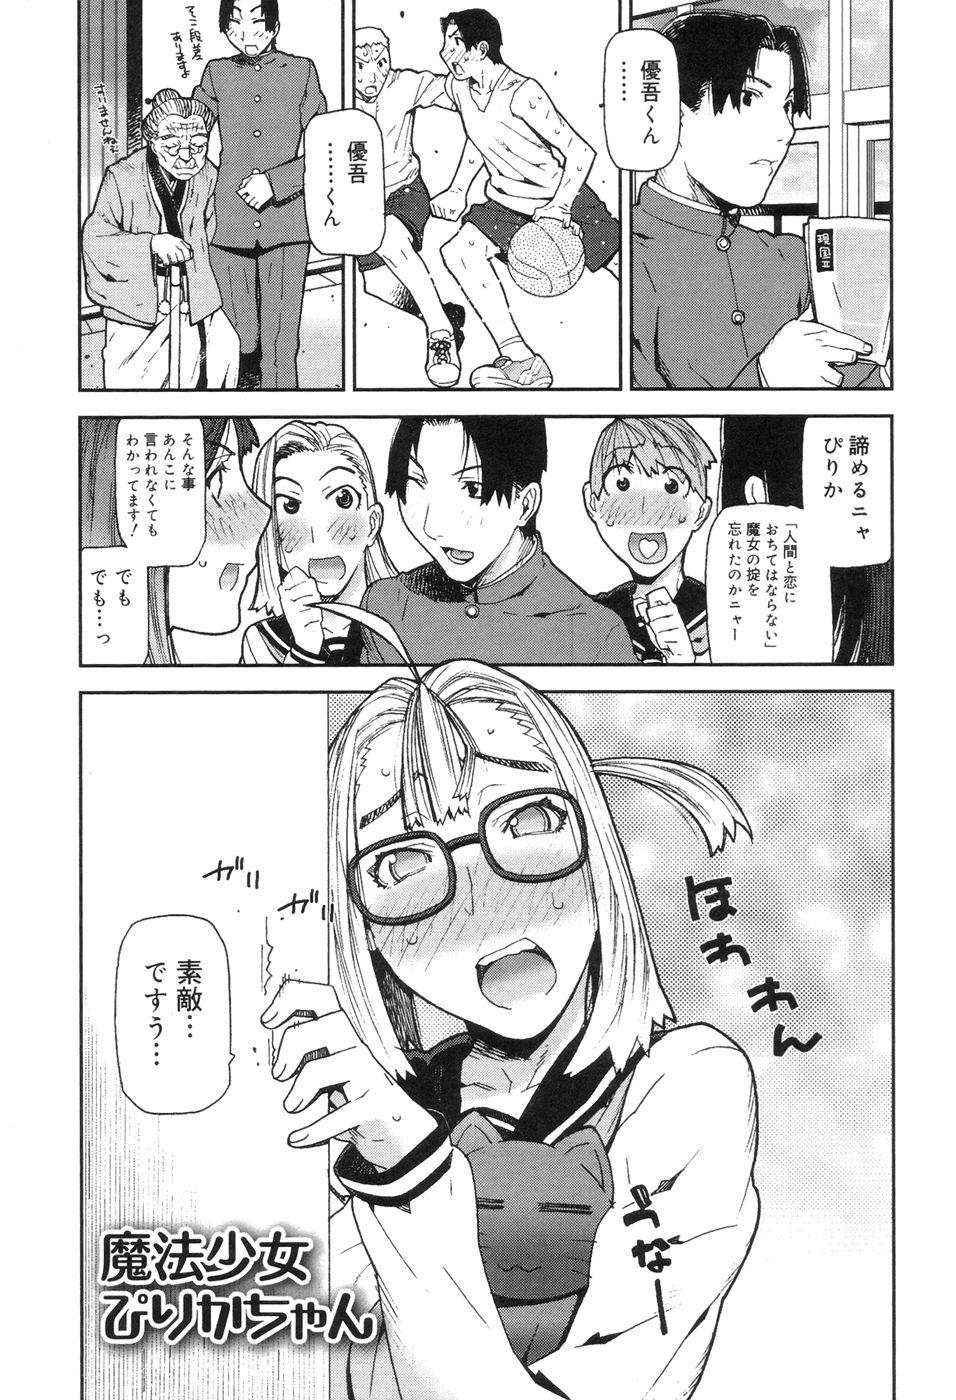 Onee-chan to issho 154